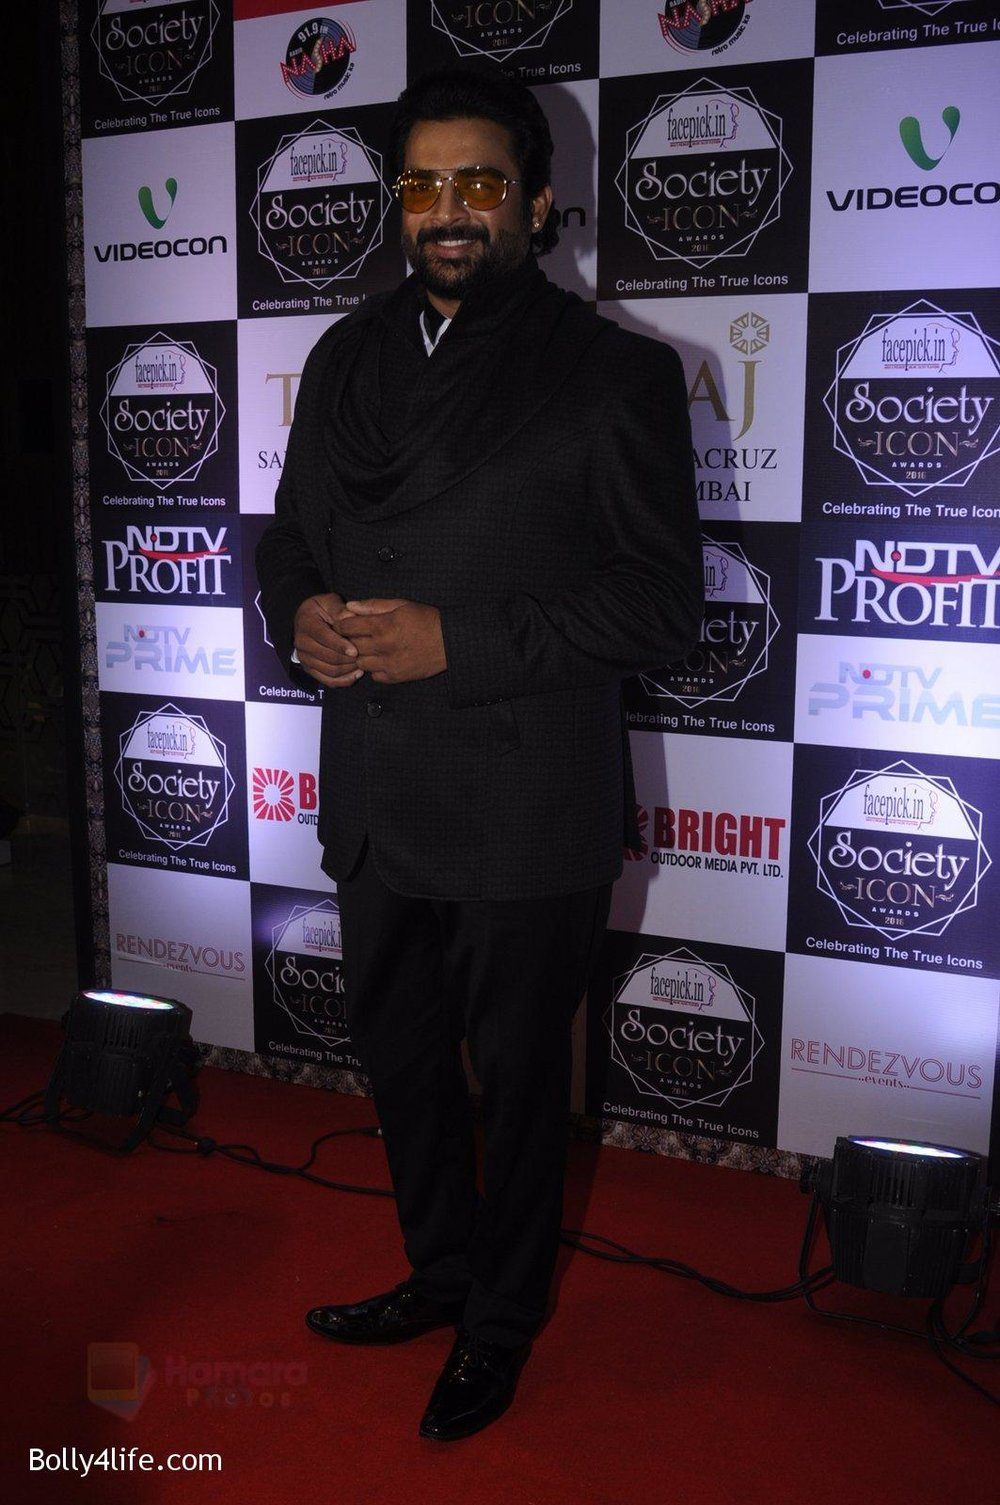 Madhavan-at-Society-Icon-Awards-on-2nd-Oct-2016-65.jpg